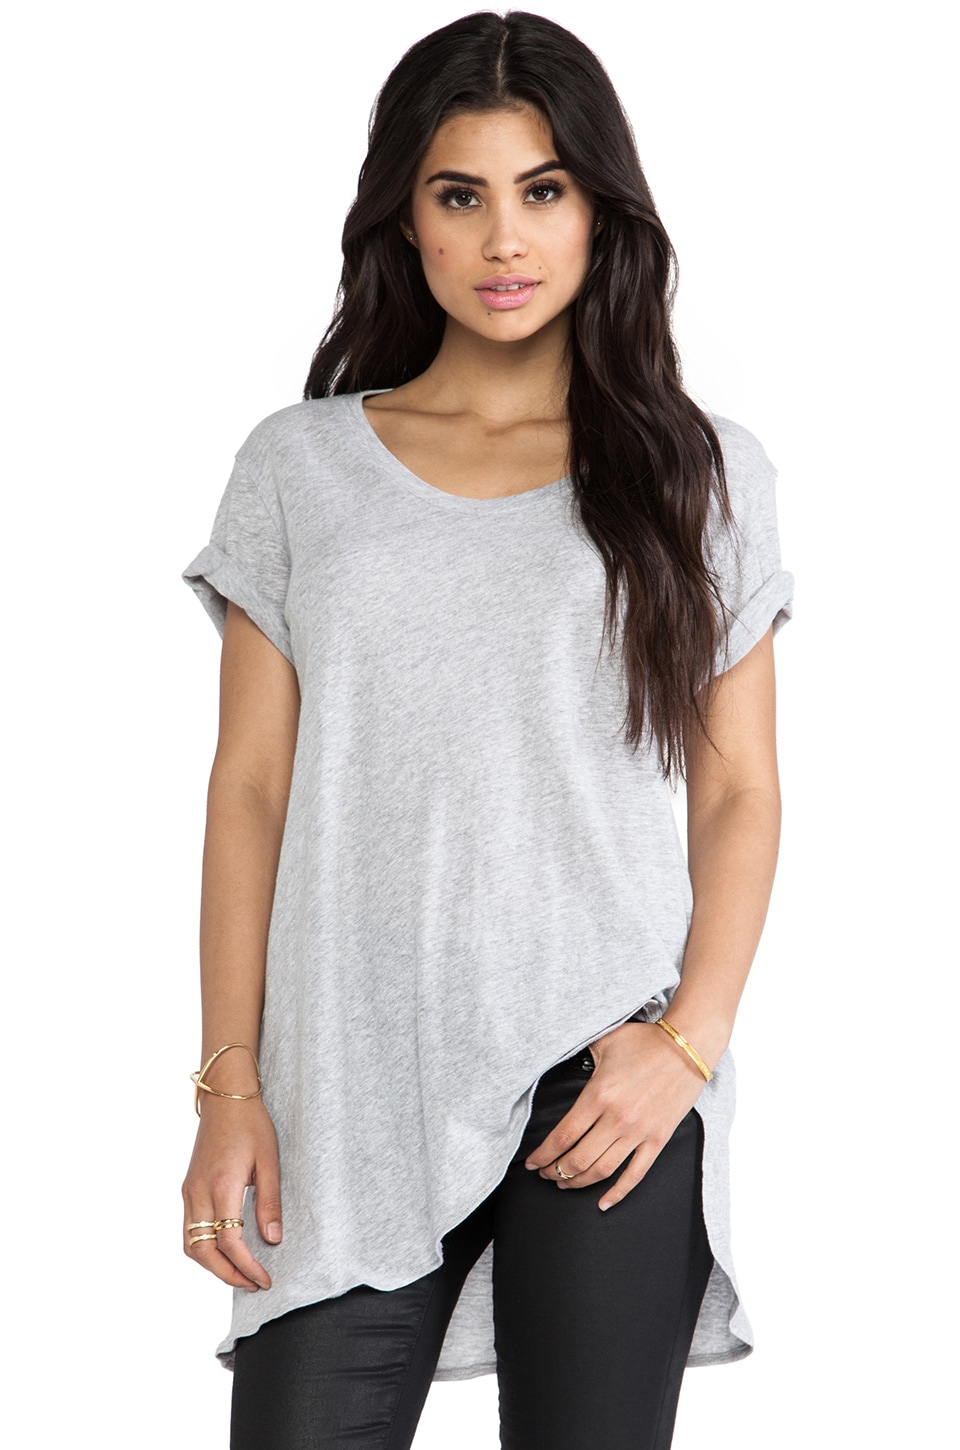 LNA Ensenada Tee in Heather Grey